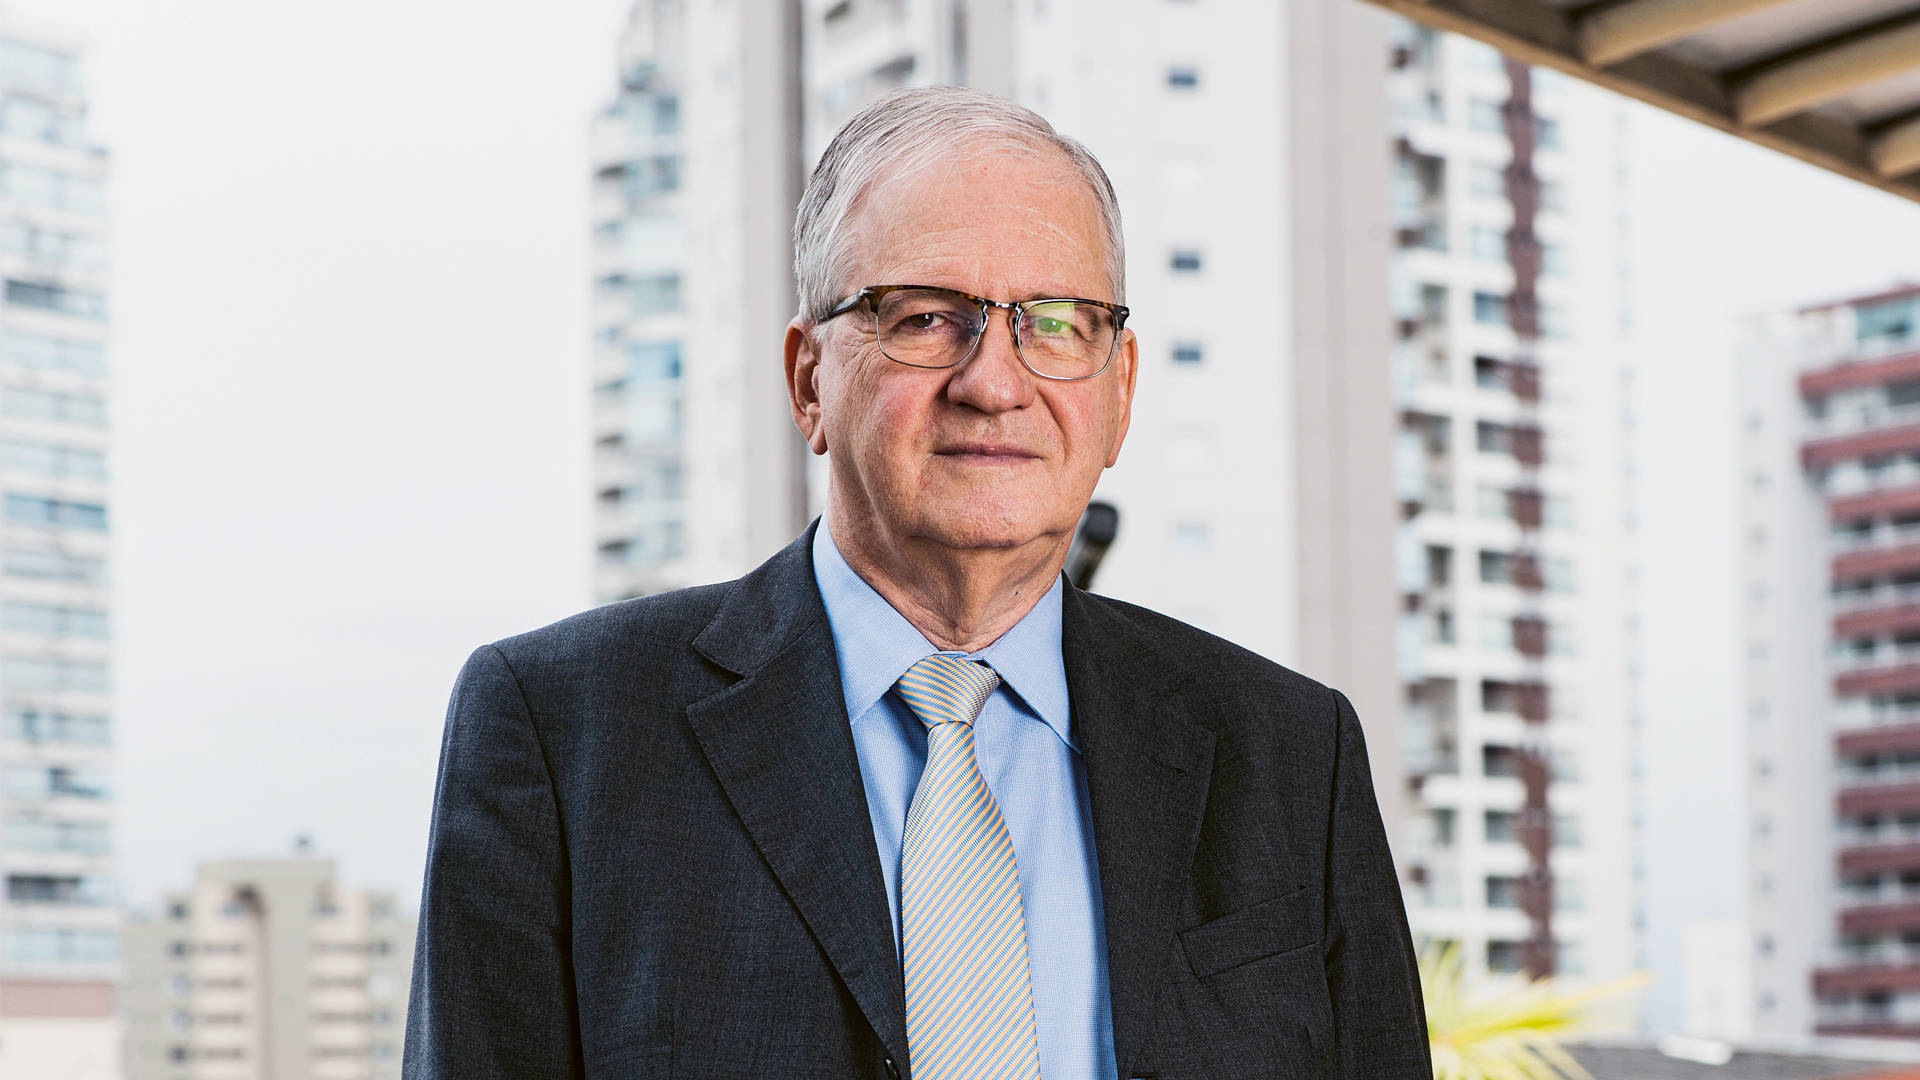 Professor Marco Antonio Zago, President of the Board of Trustees of FAPESP, the São Paulo Research Foundation